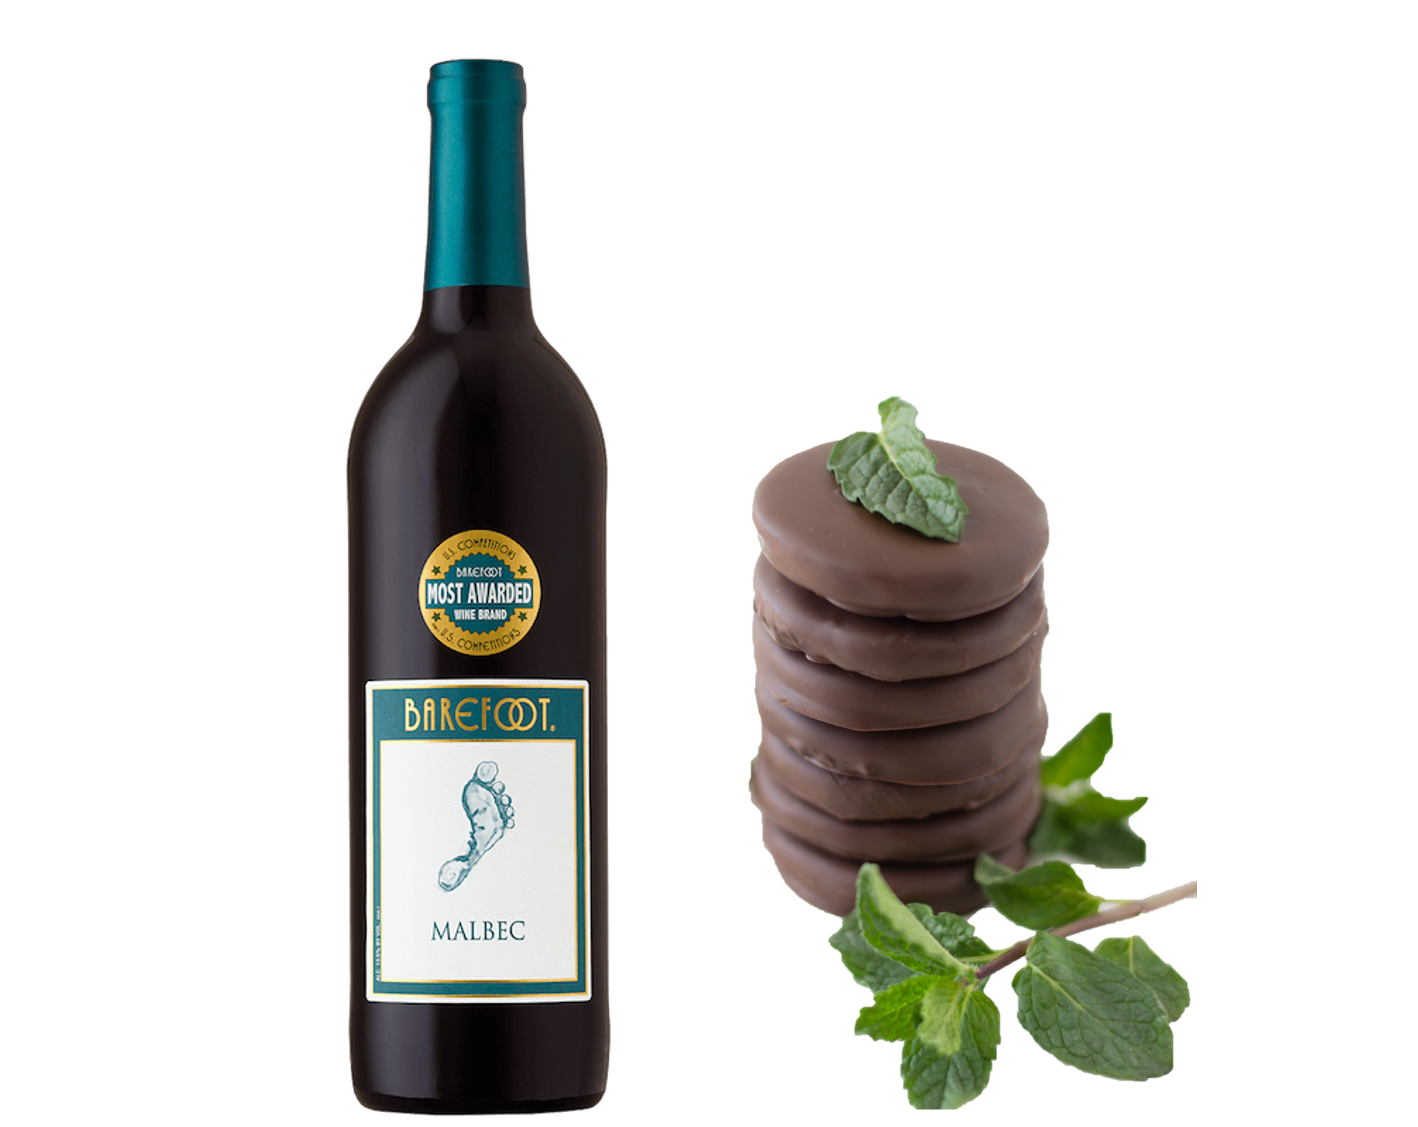 How to pair wine with Girl Scout cookies